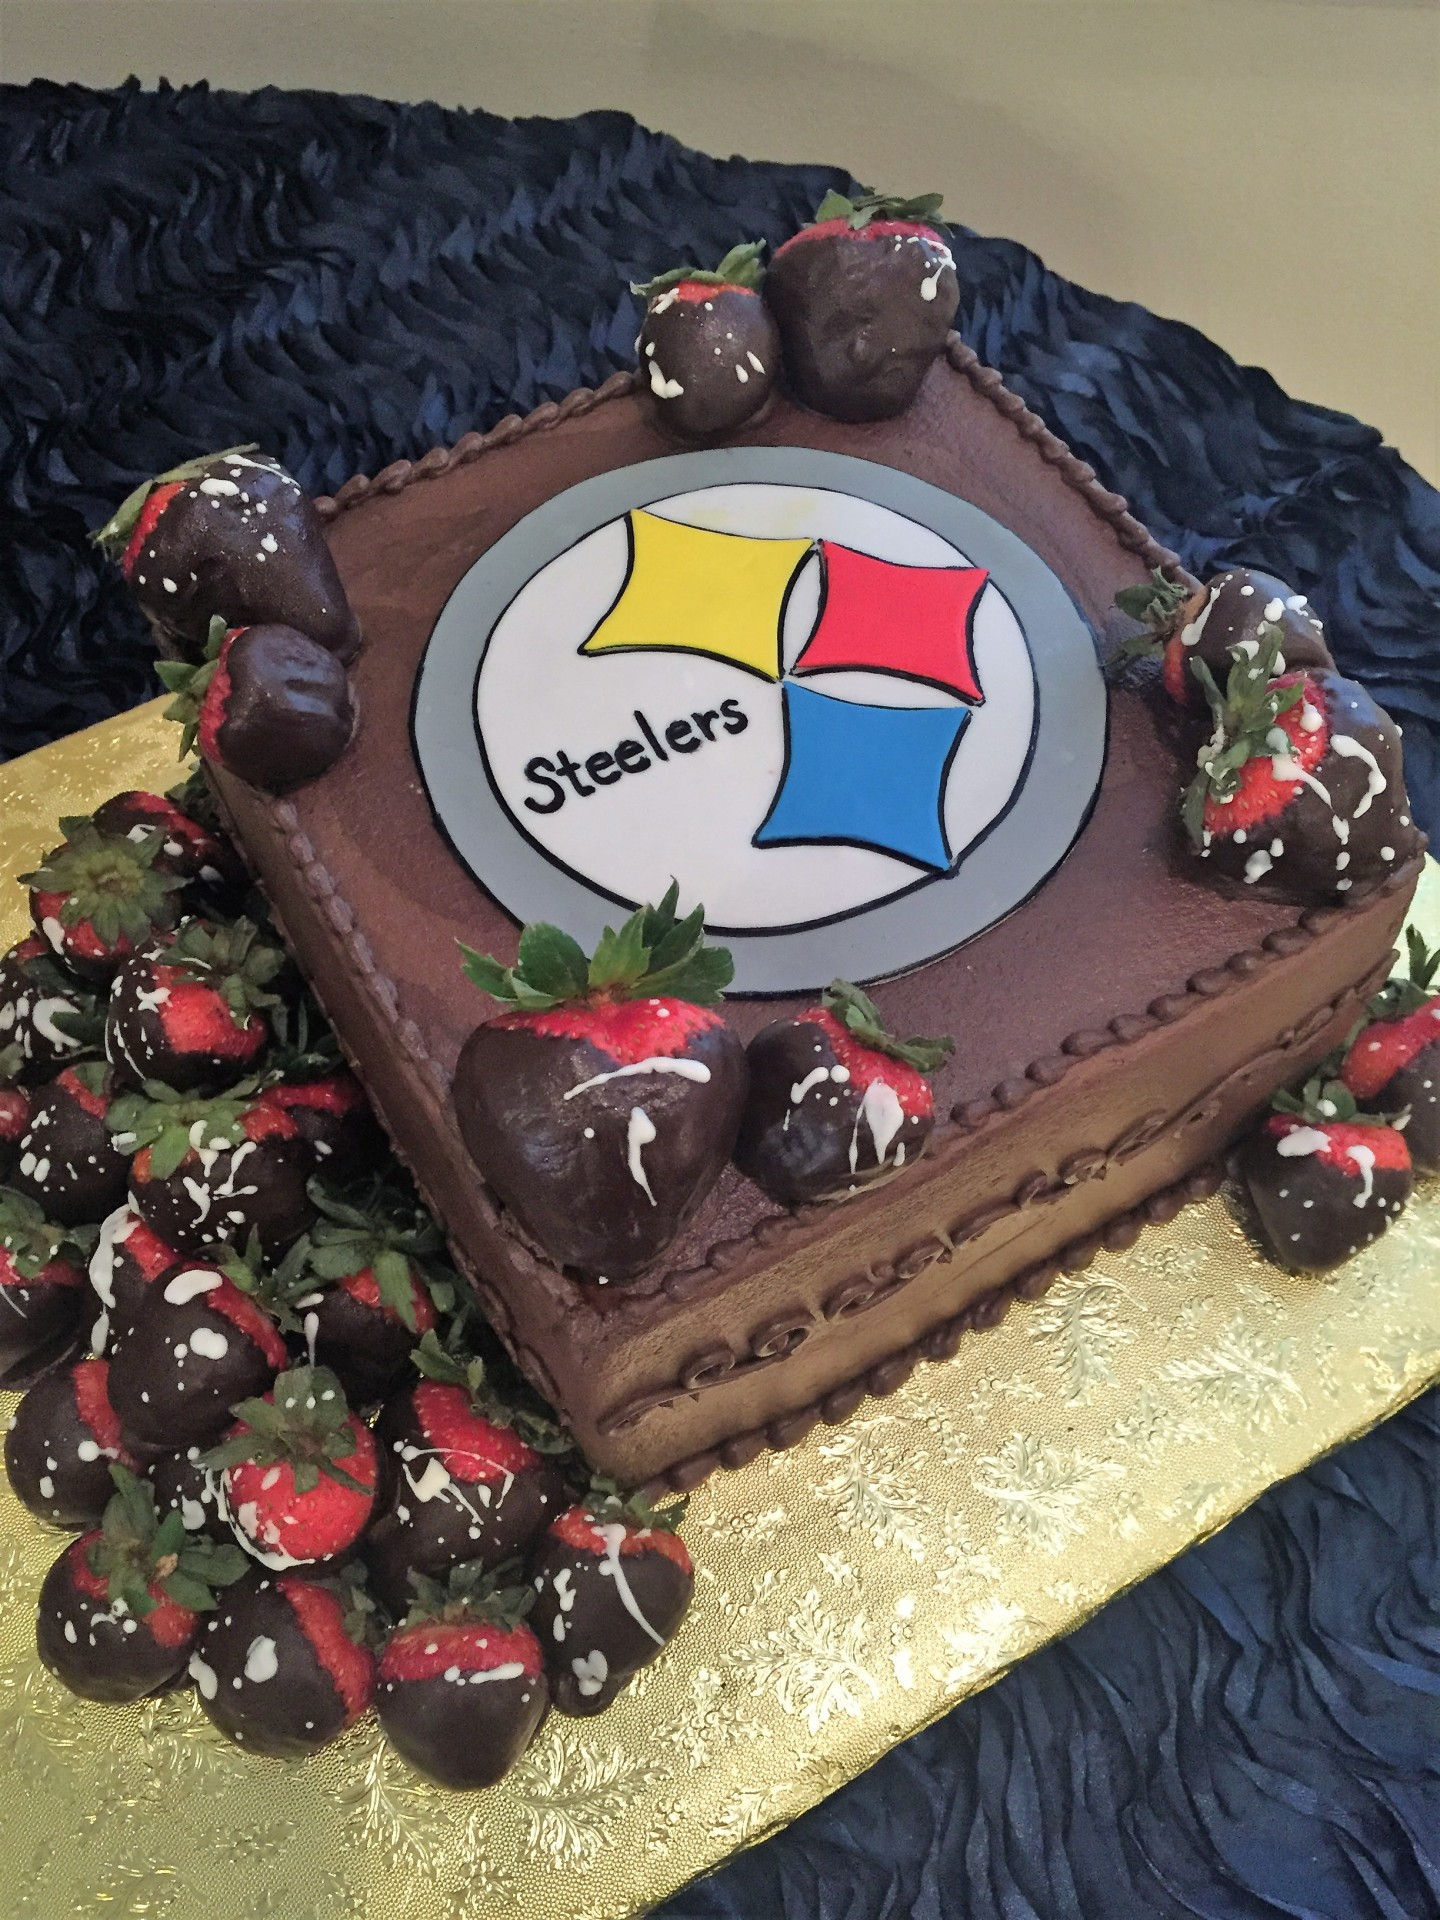 Steelers Chocolate with Chocolate Strawberries